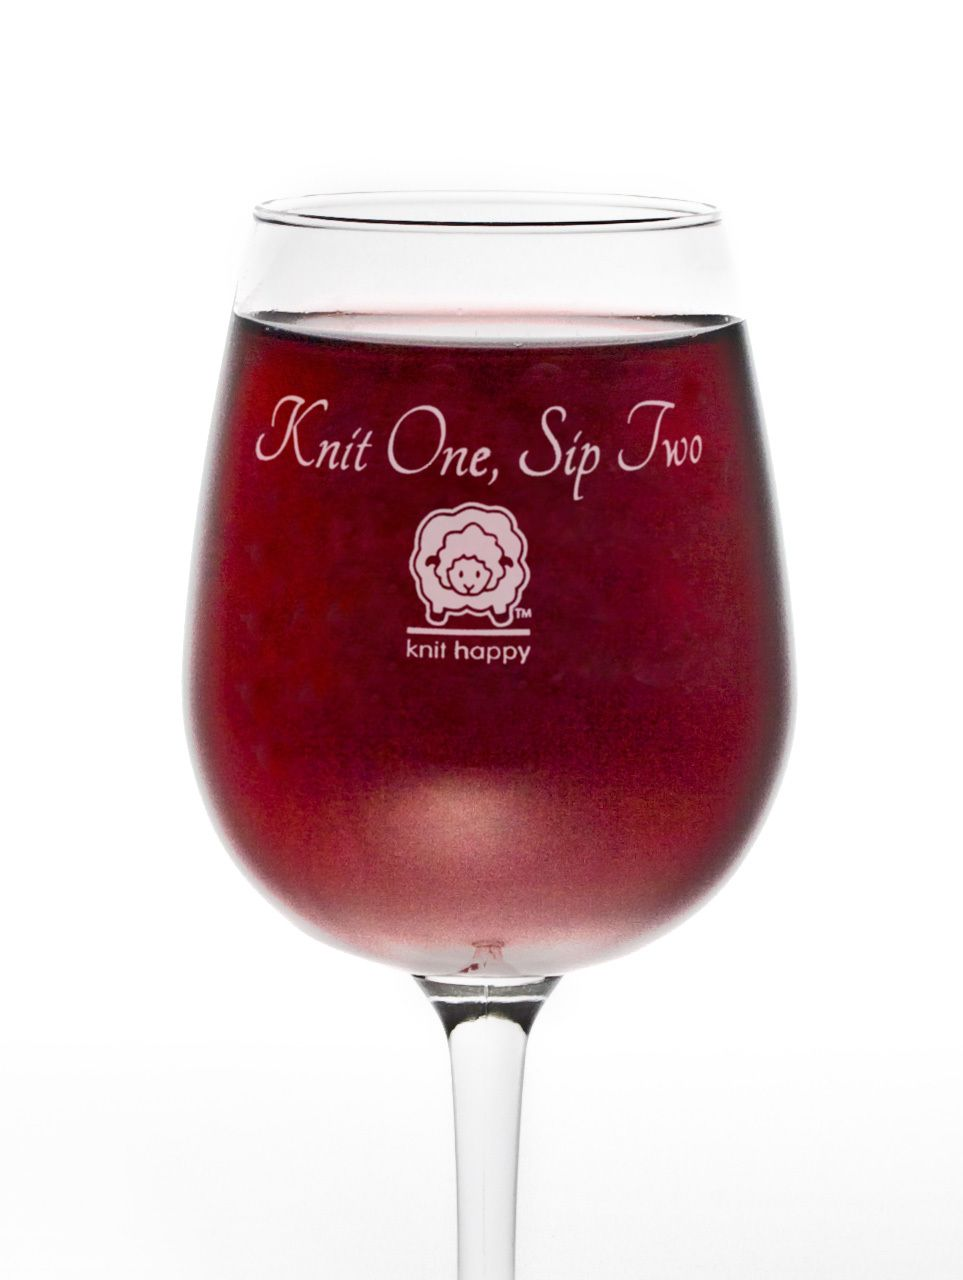 Knit Happy Knit One Sip Two Wine Glass Themed Wine Glasses Wine Wine Glasses